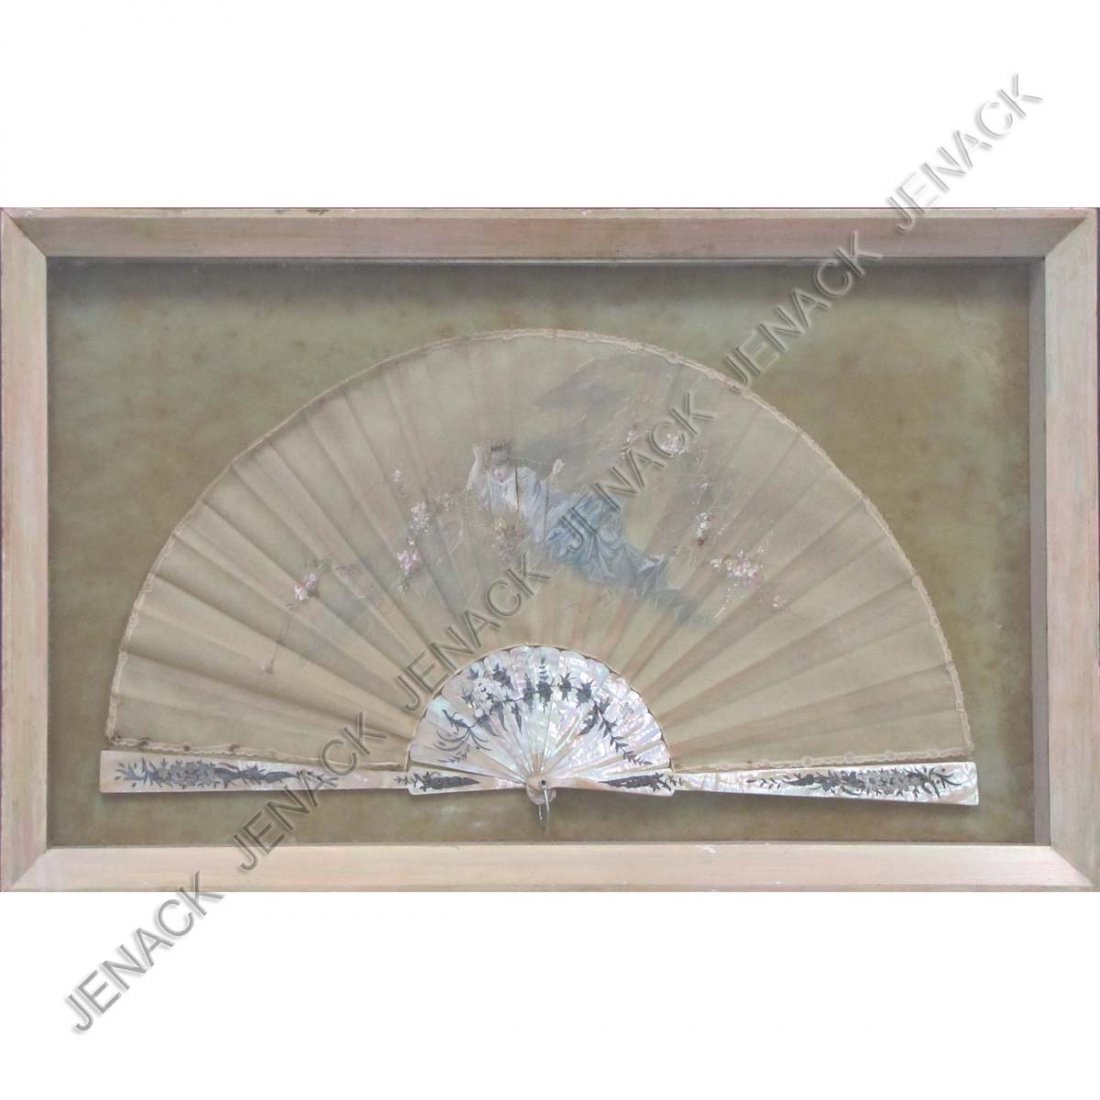 16: VINTAGE CONTINENTAL SILVER INLAID FAN